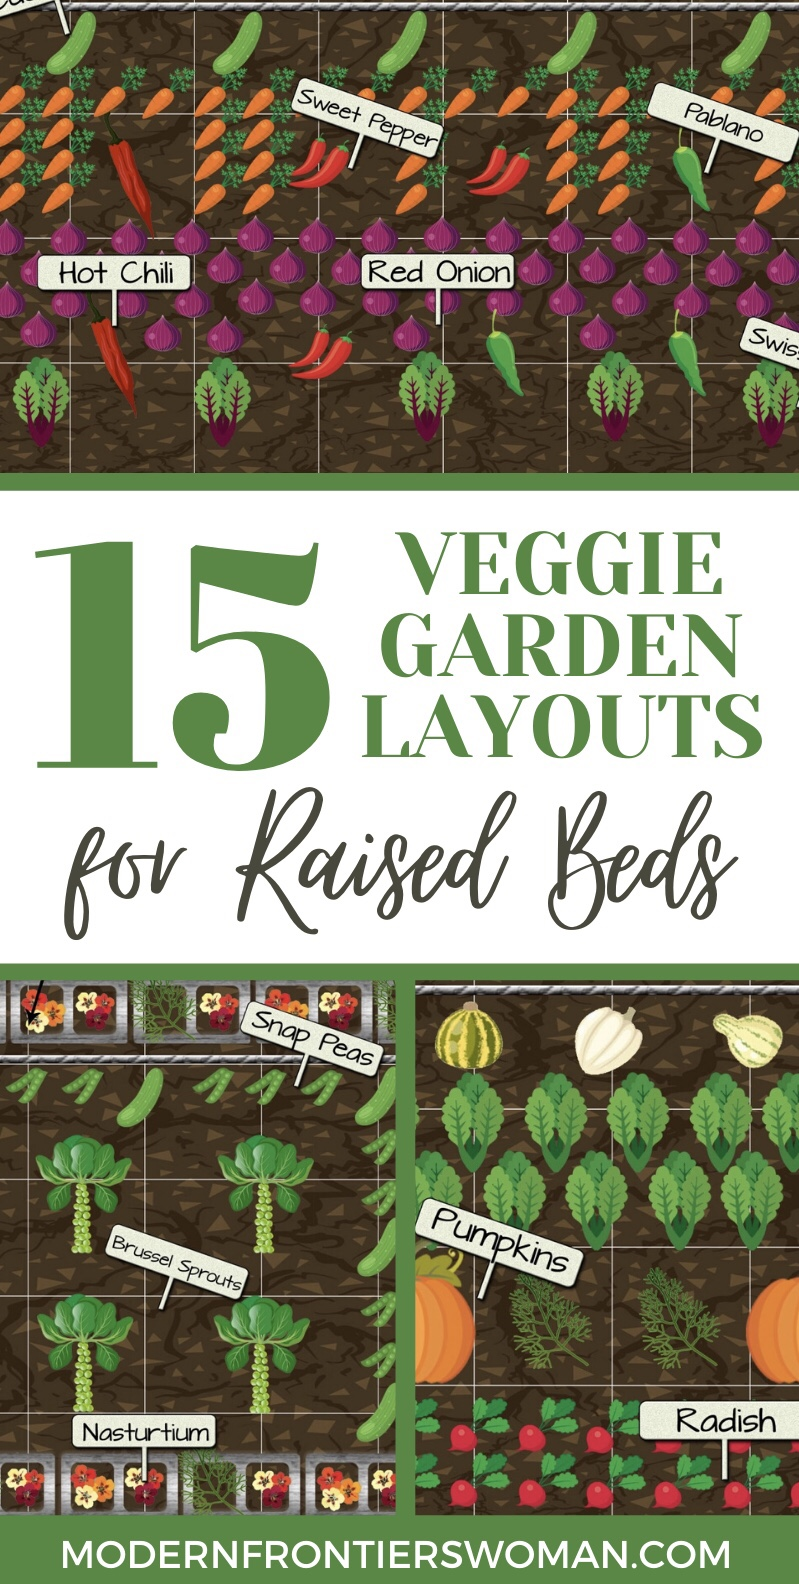 15 Veggie Garden Layouts got Raised Beds